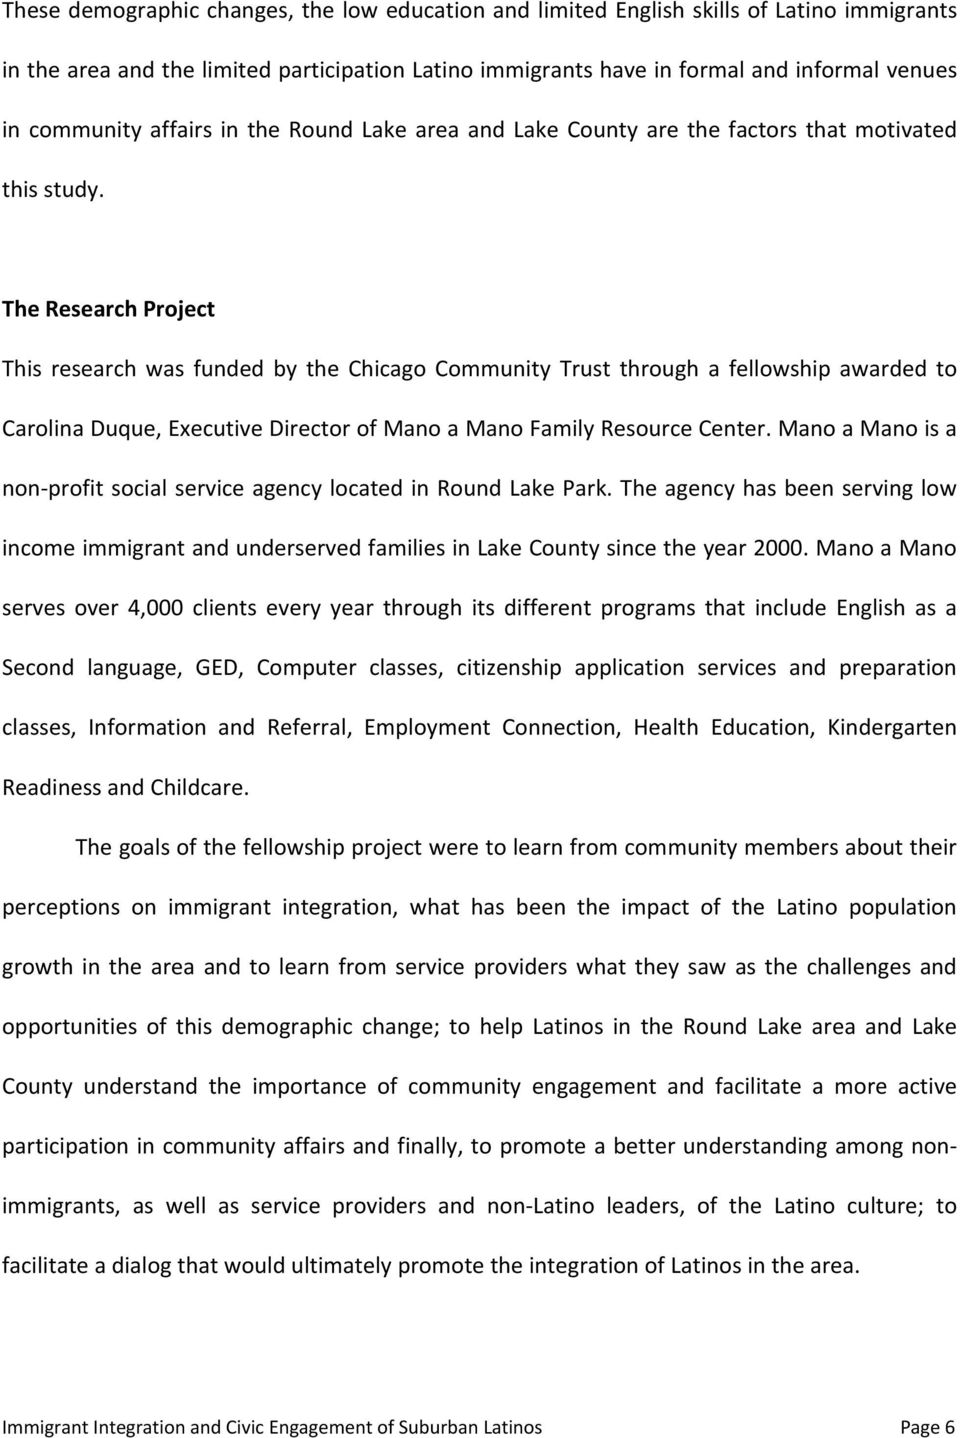 The Research Project This research was funded by the Chicago Community Trust through a fellowship awarded to Carolina Duque, Executive Director of Mano a Mano Family Resource Center.